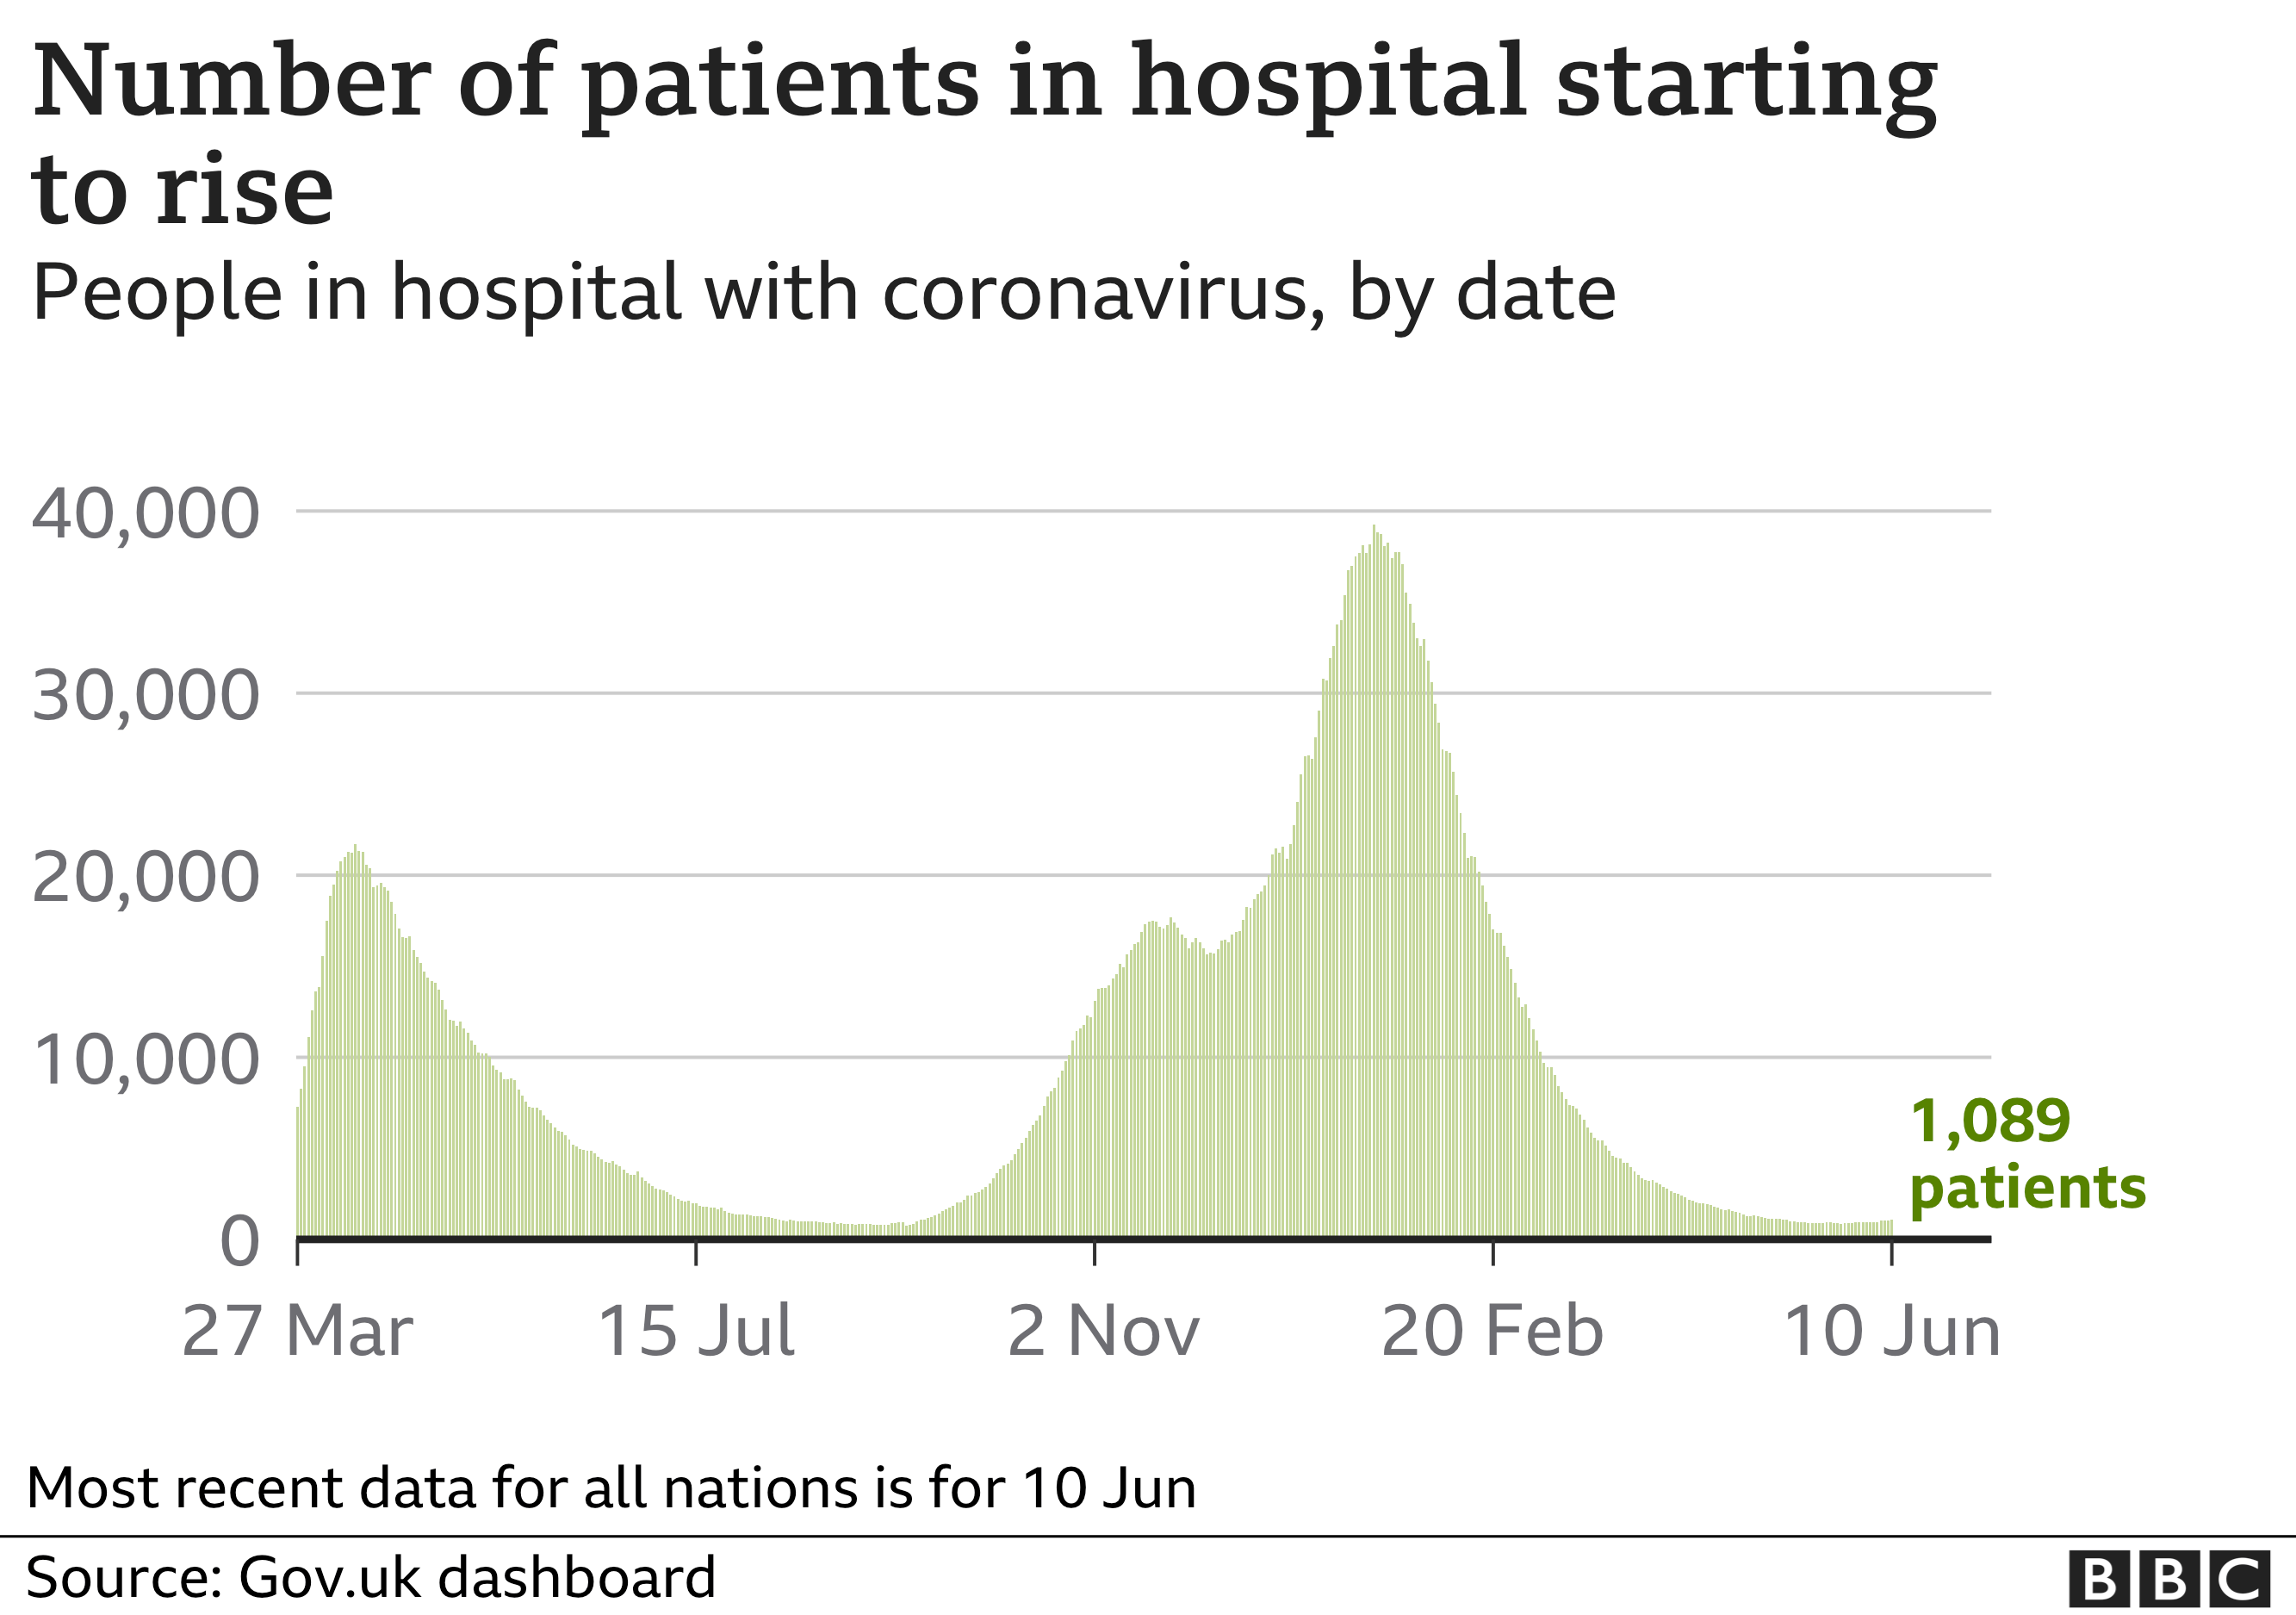 Chart shows hospital cases starting to rise again